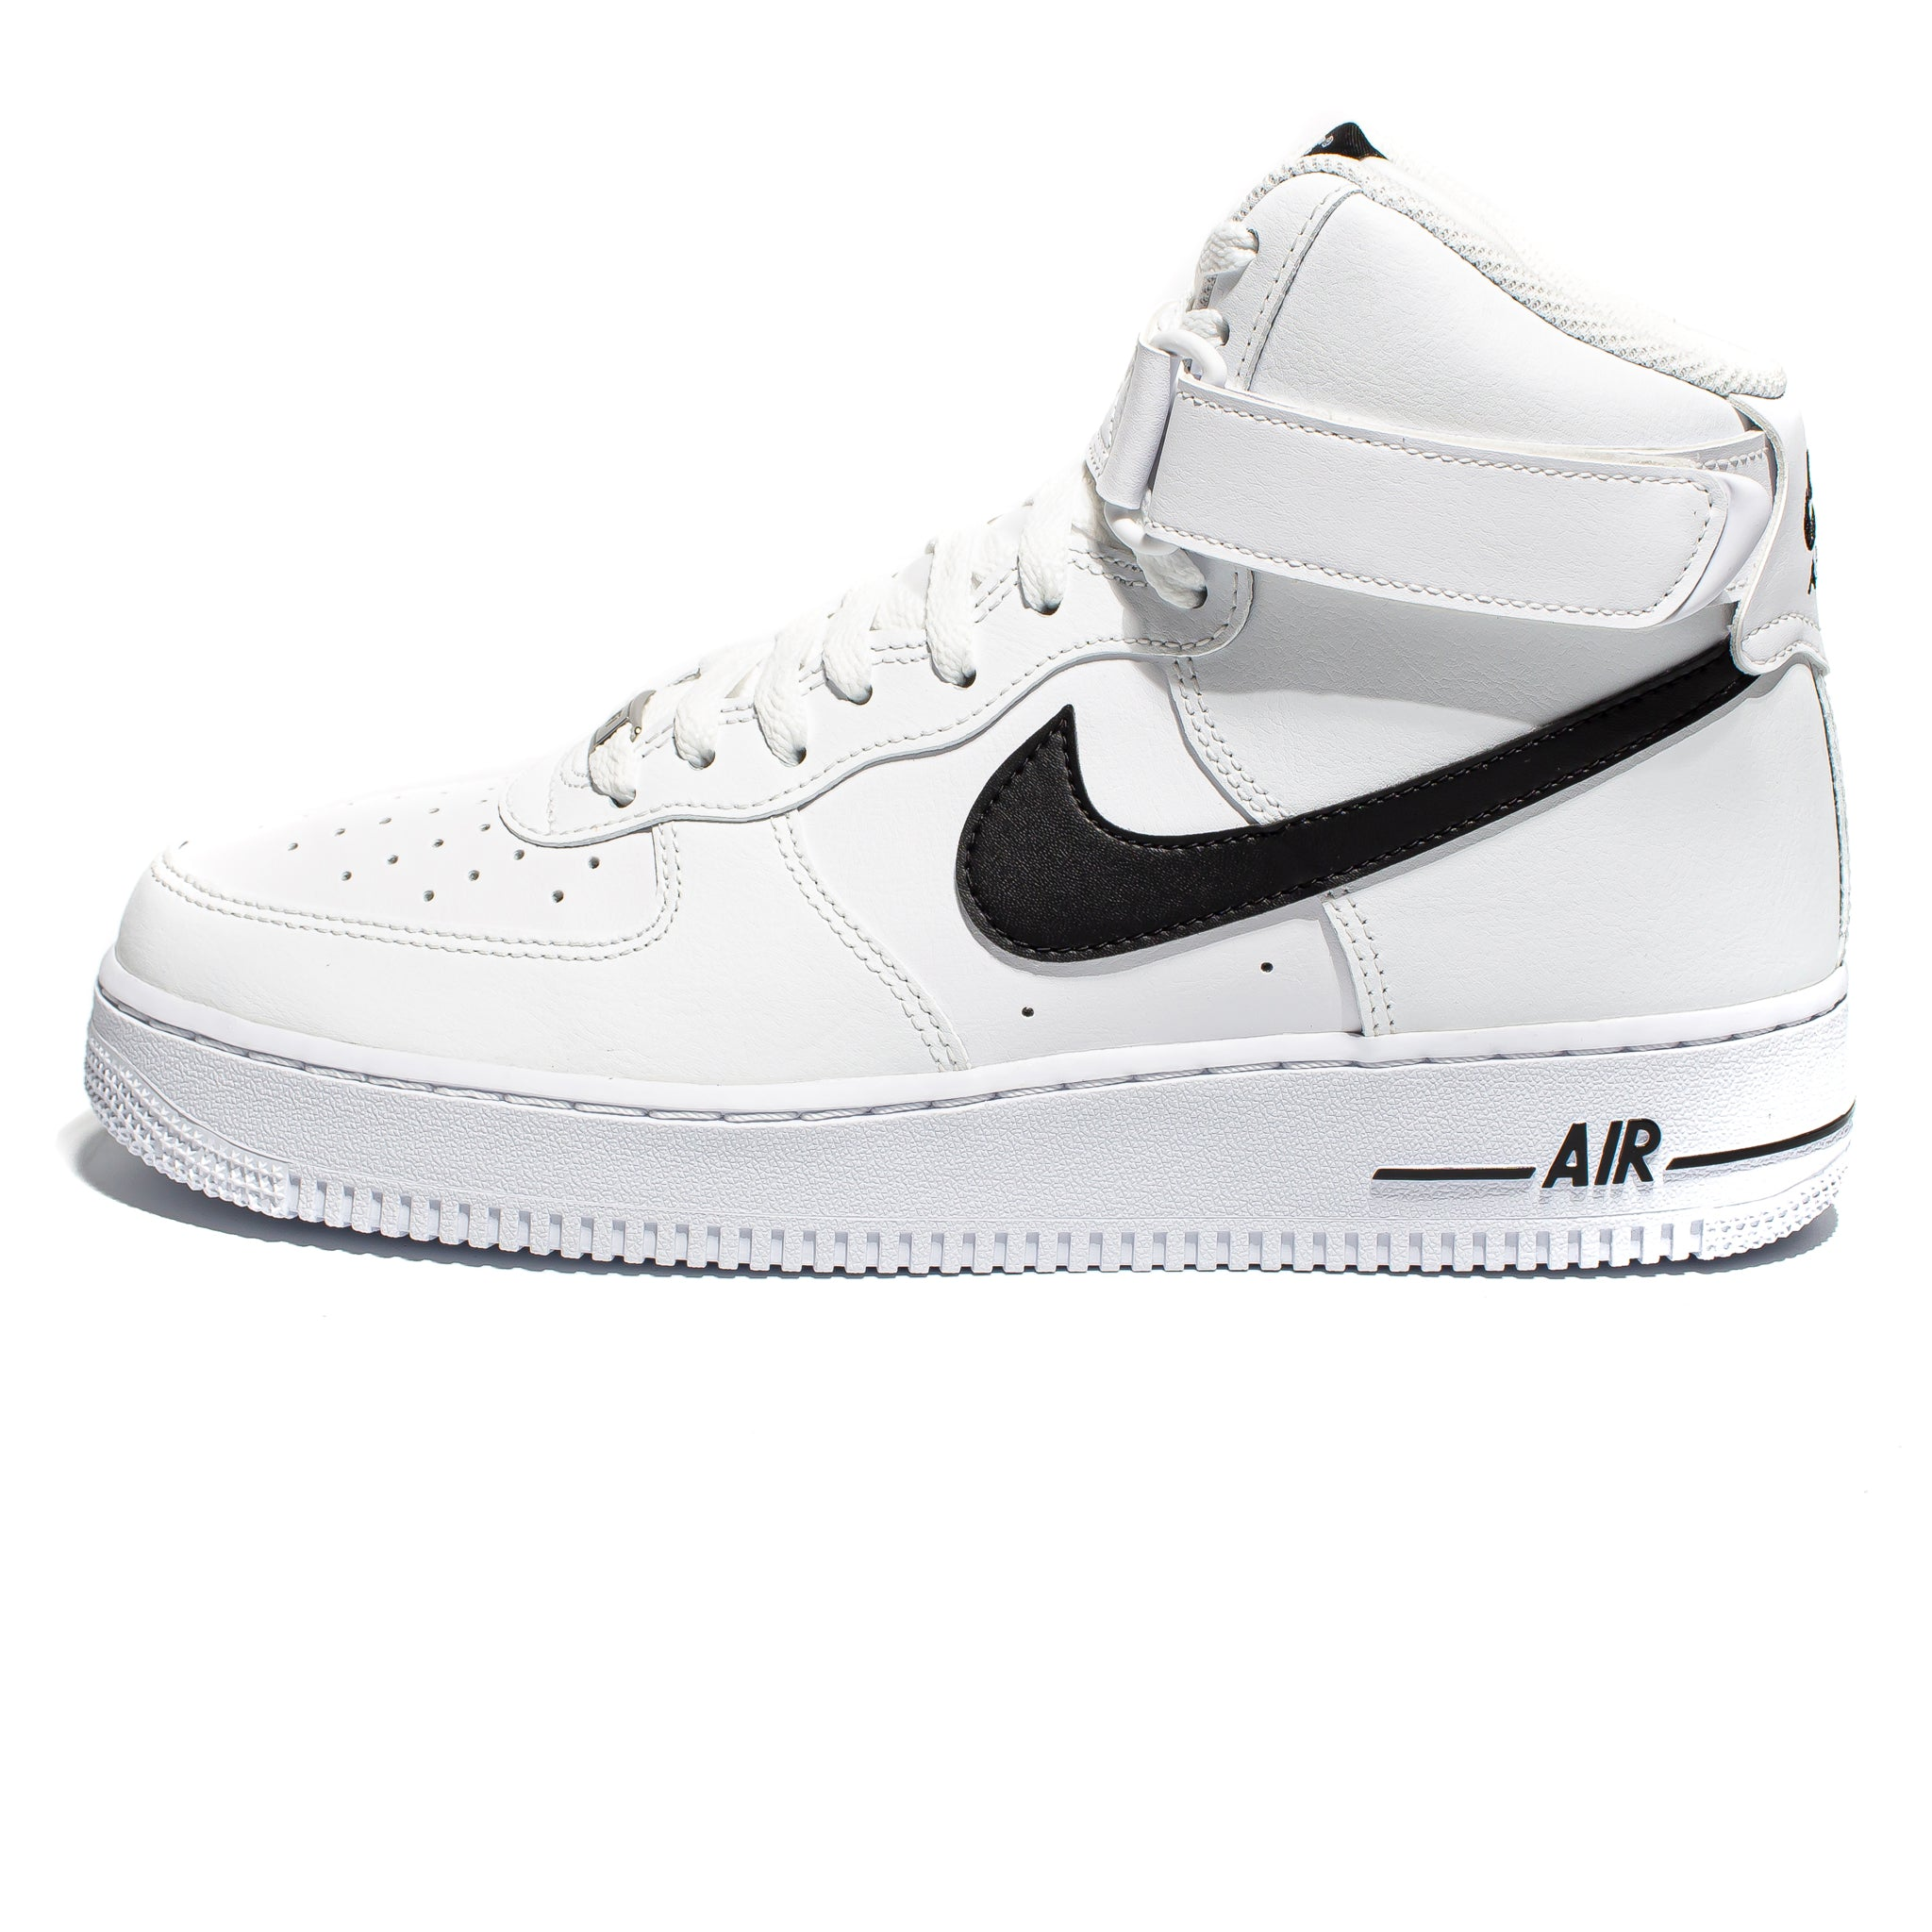 Nike Air Force 1 High '07 'White/Black'